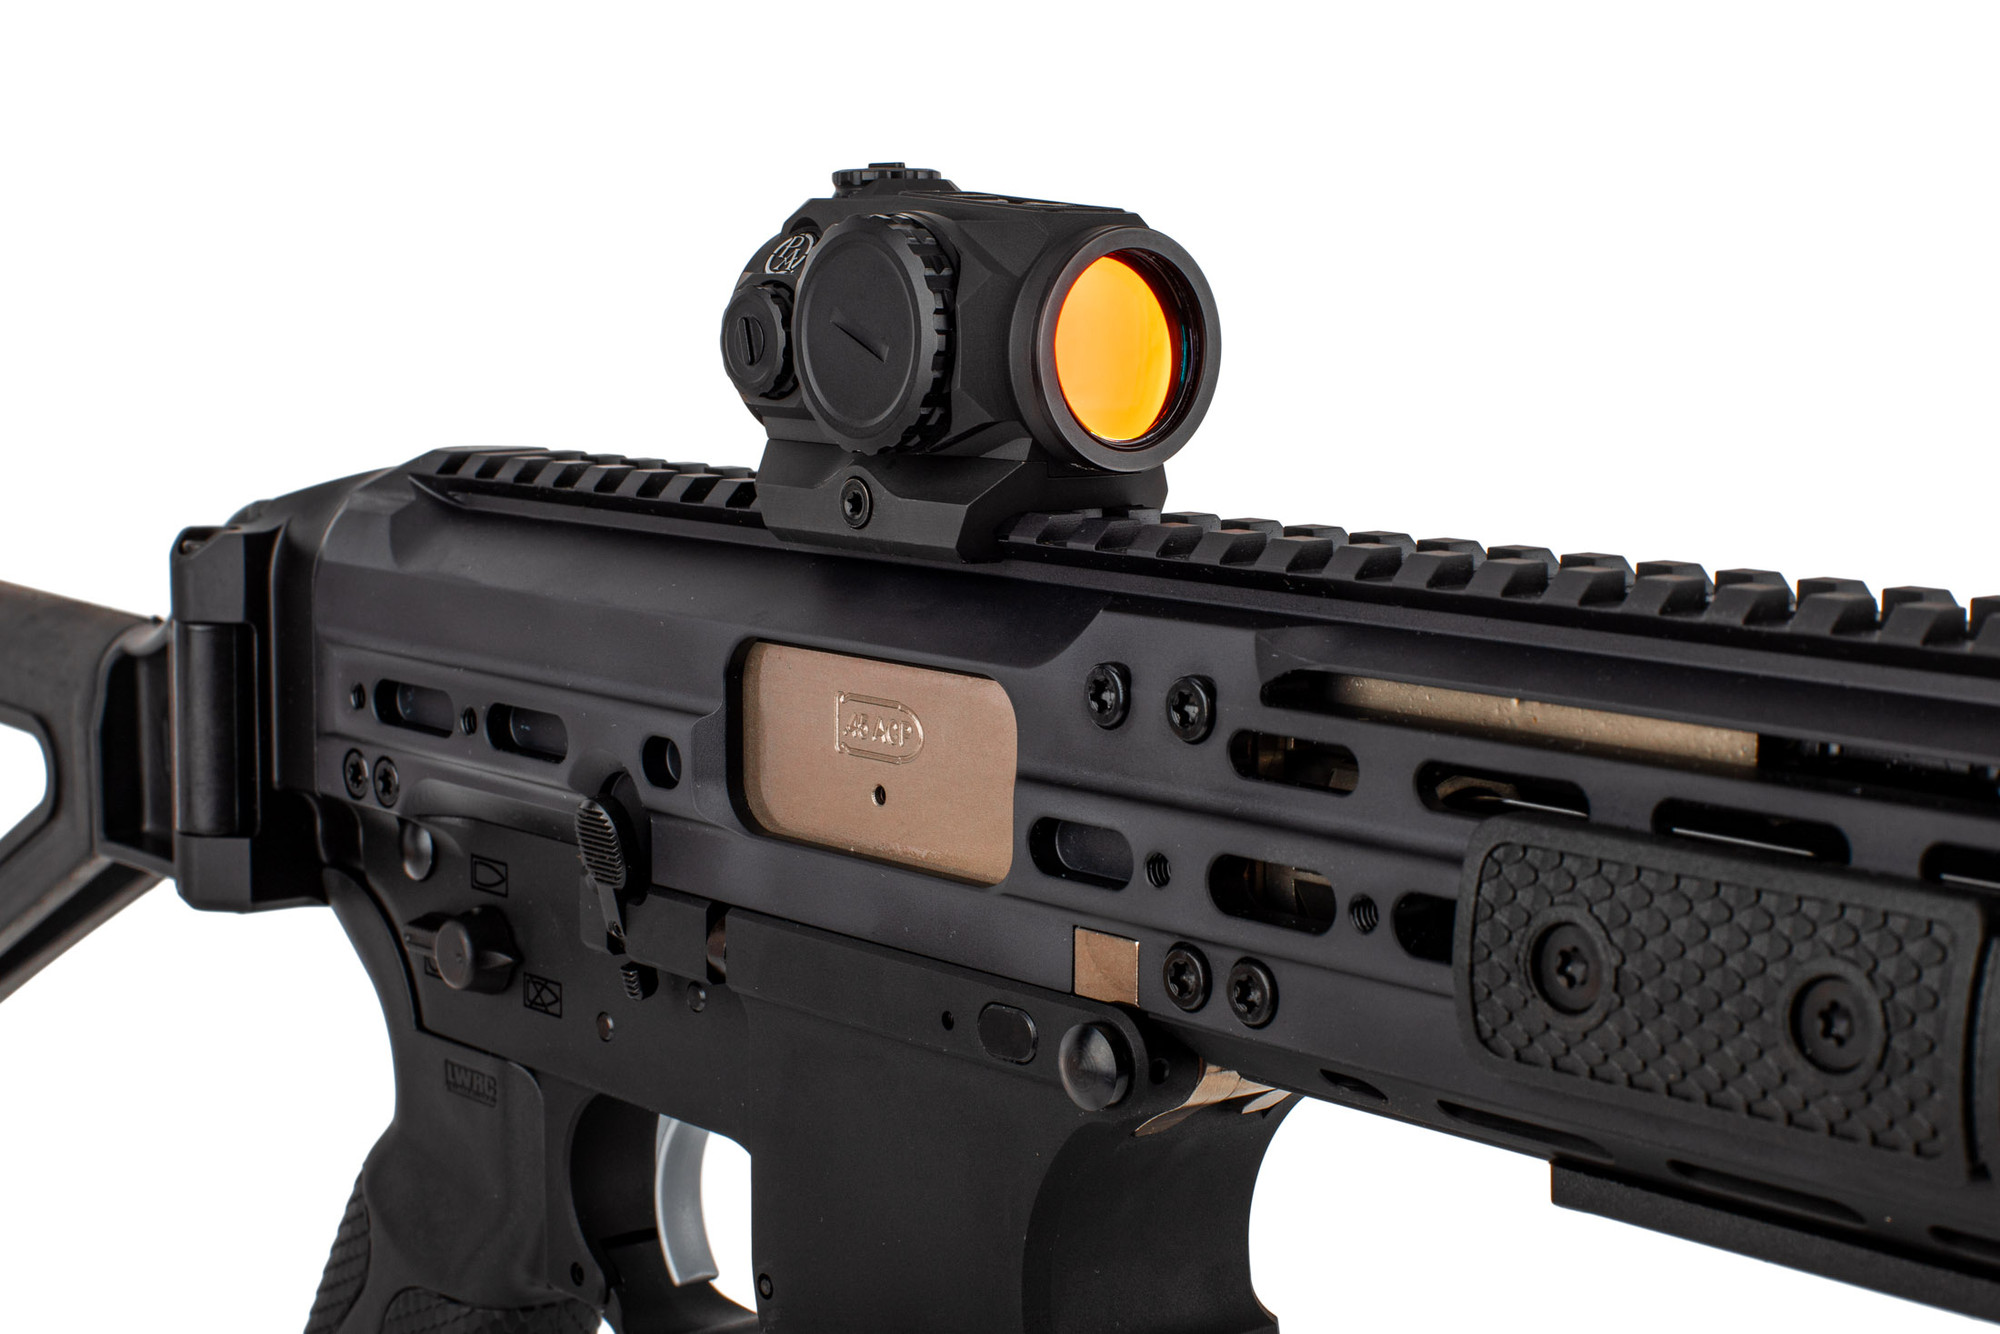 Primary Arms Introduces the SLx MD-20 Budget Friendly Micro Red Dot Sight